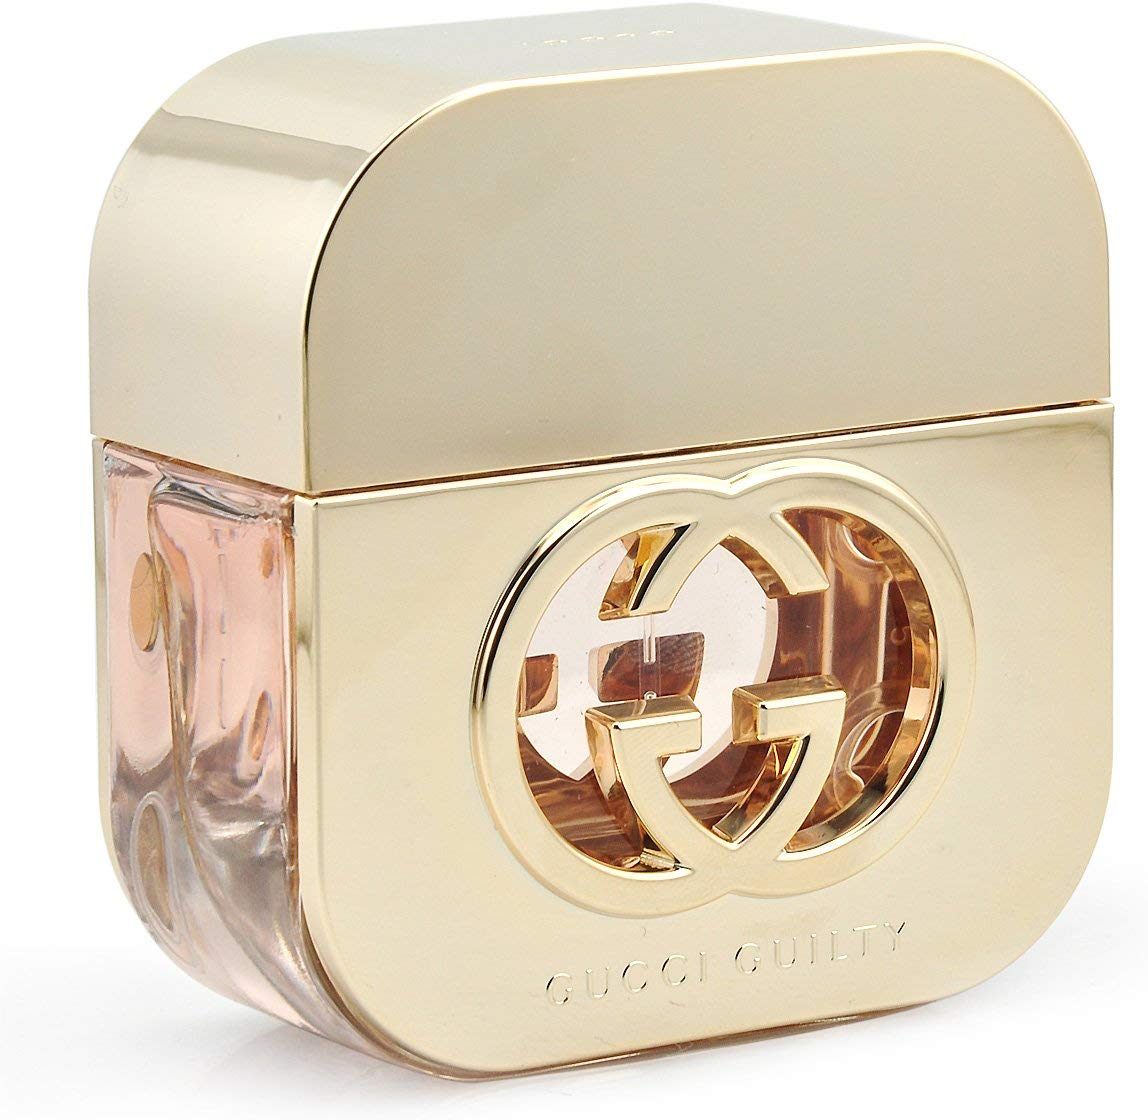 Gucci Guilty Eau de Toilette for Women – 50 ml for £35.93 on Amazon